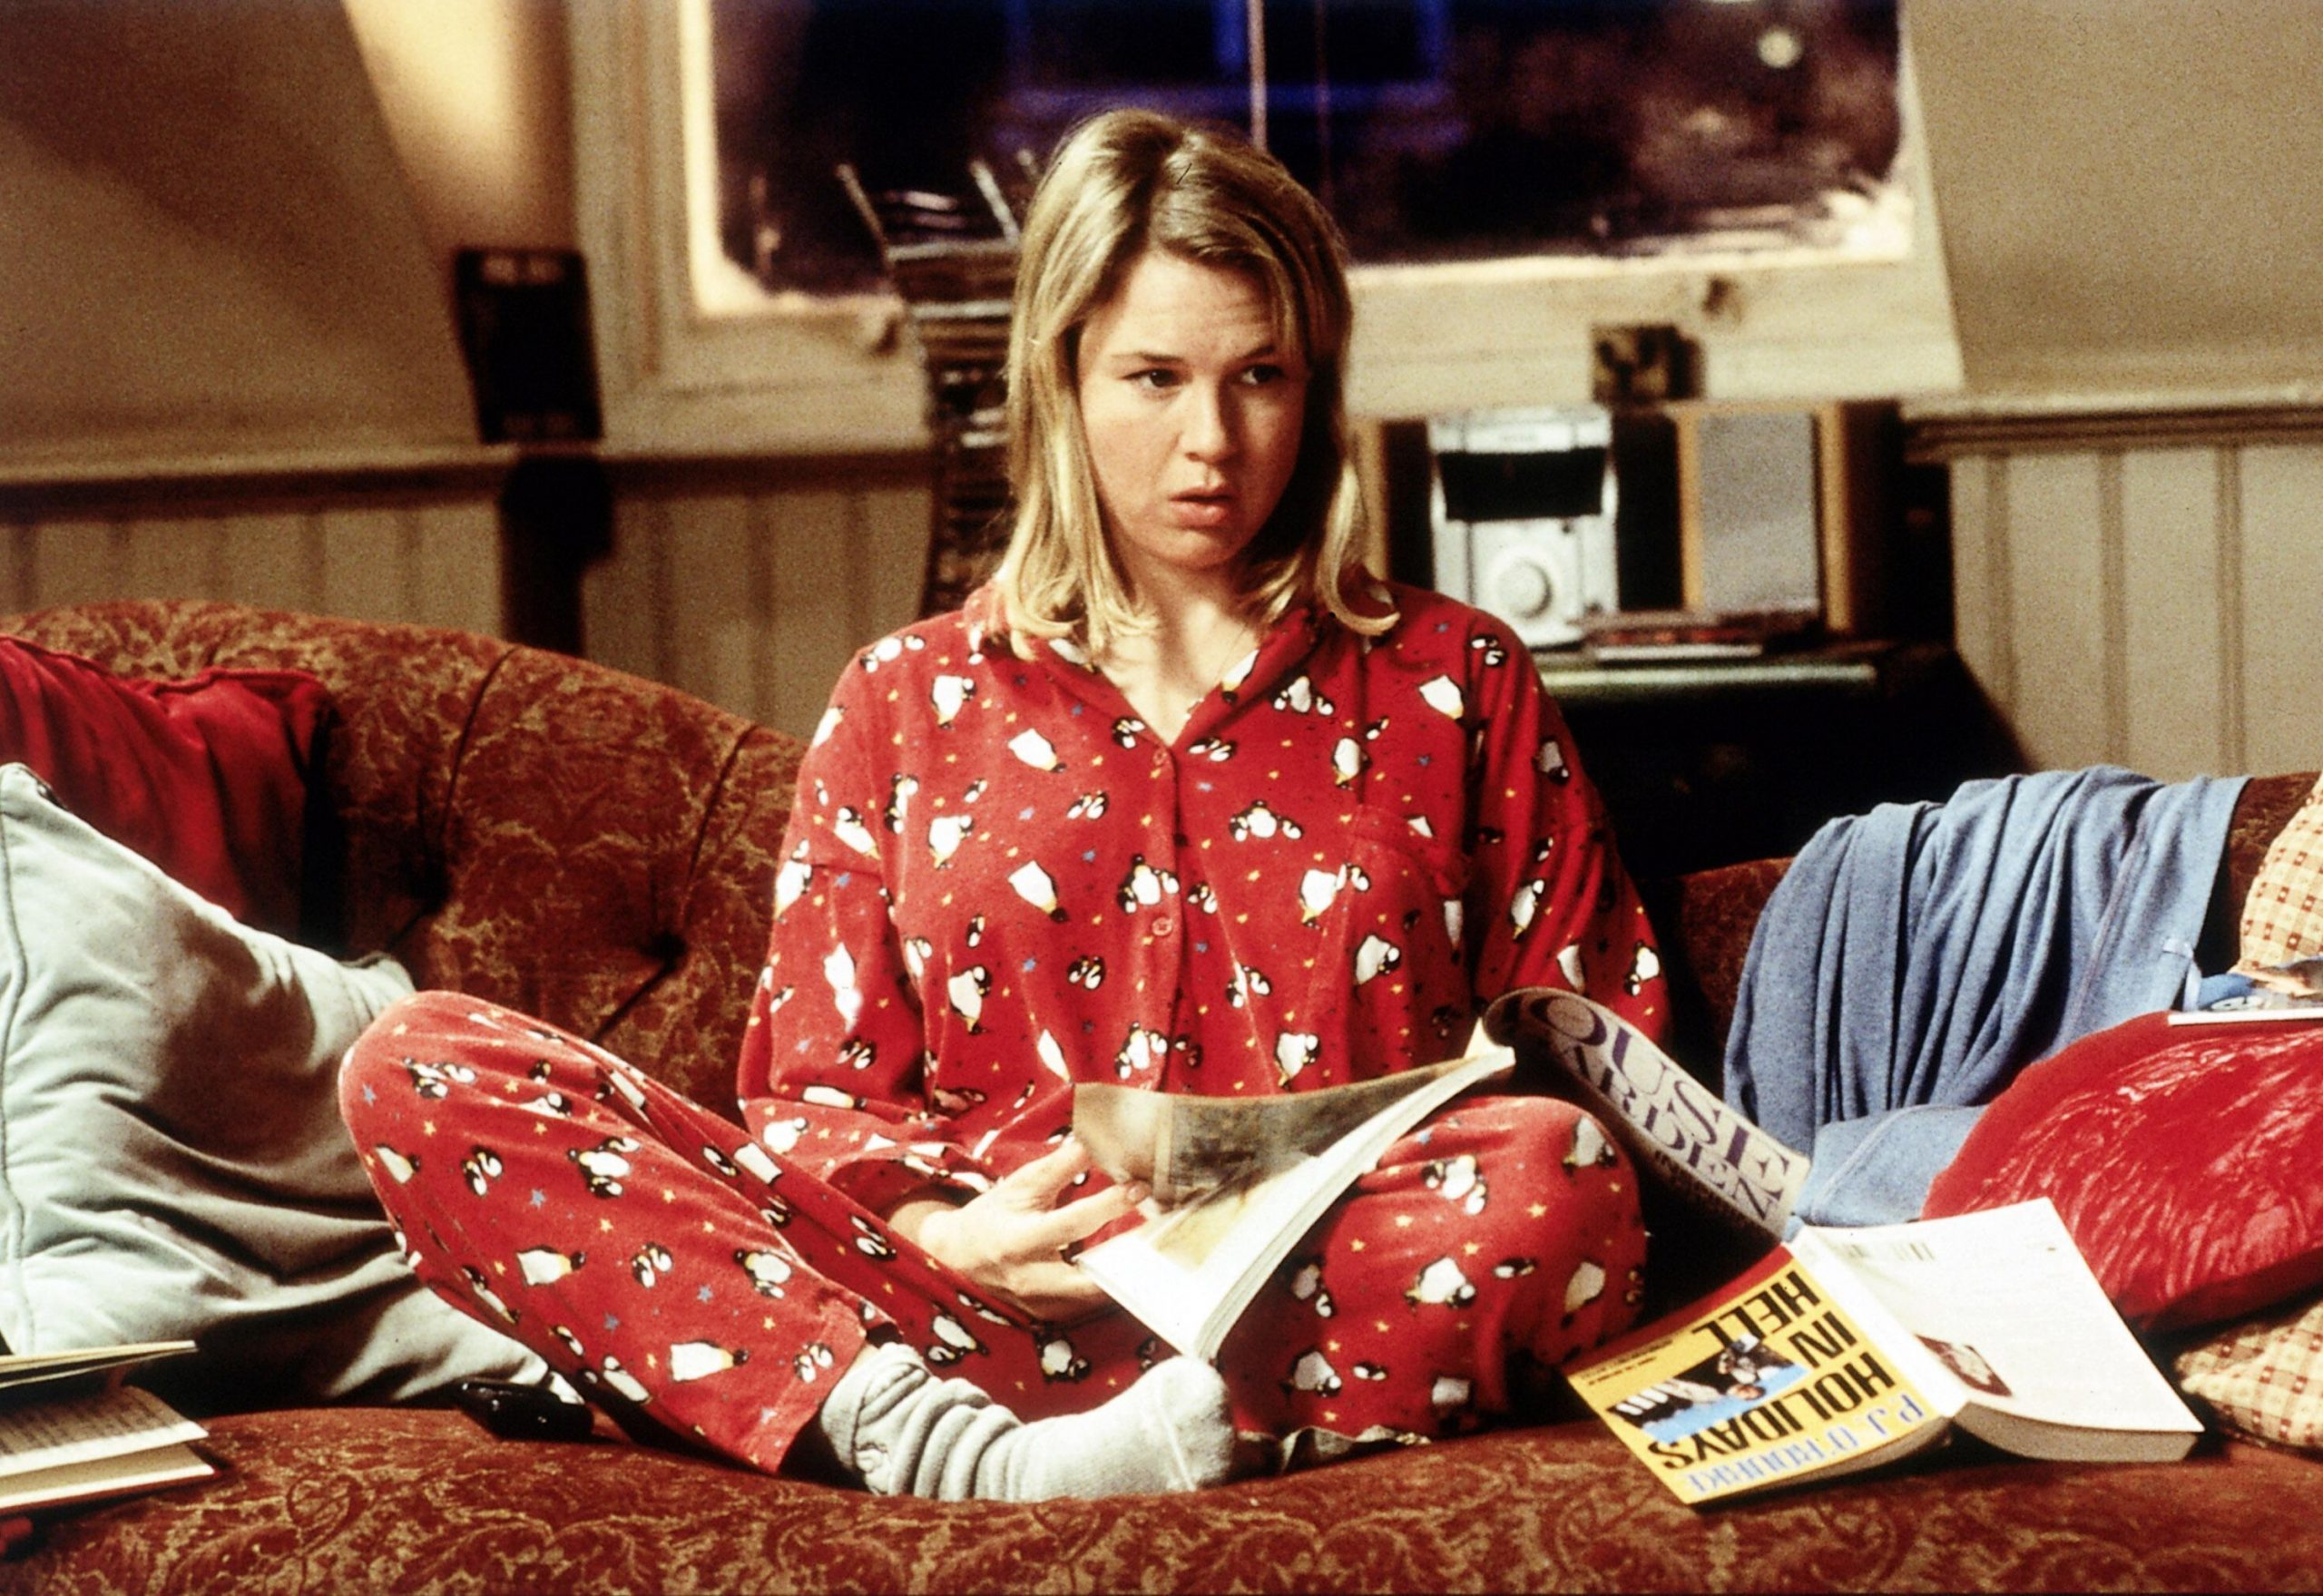 An image from Bridget Jones's Diary showing Bridget in her pyjamas